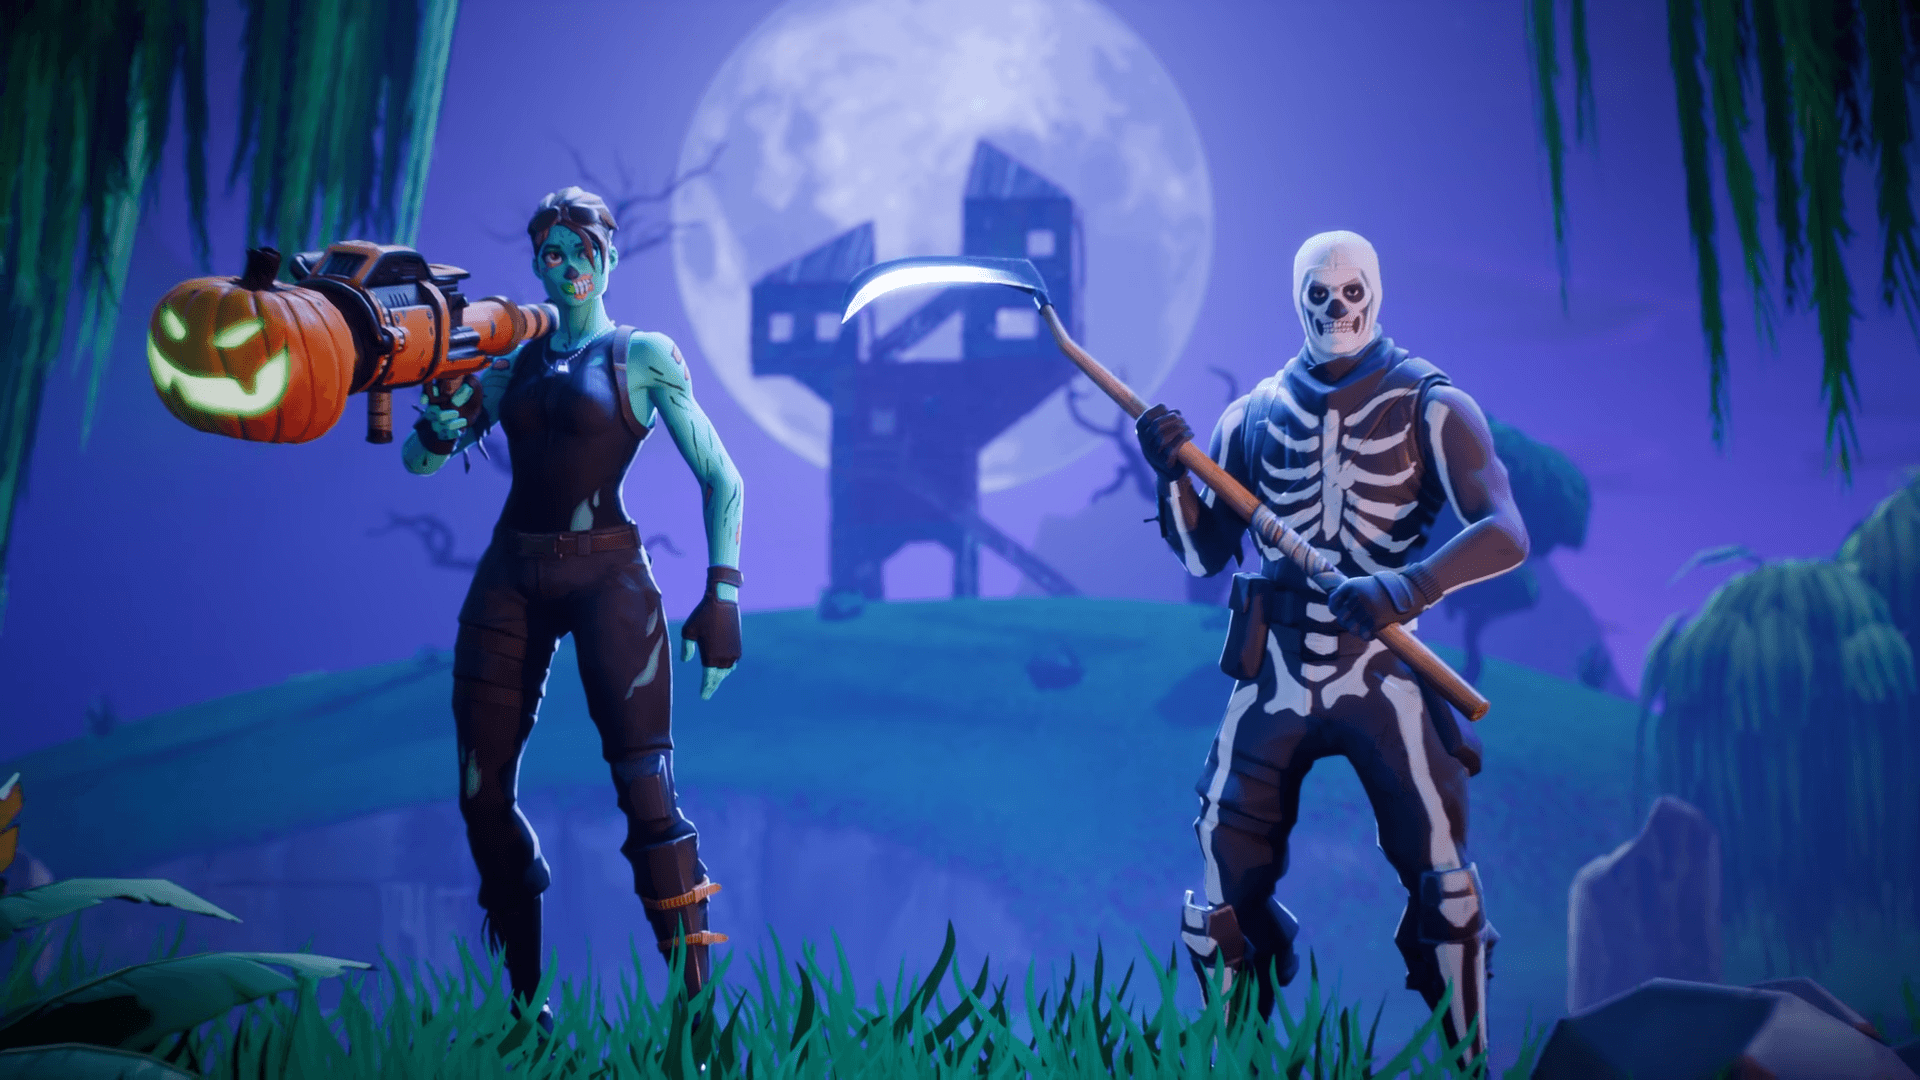 upcoming halloween cosmetics leaked, including skull trooper's